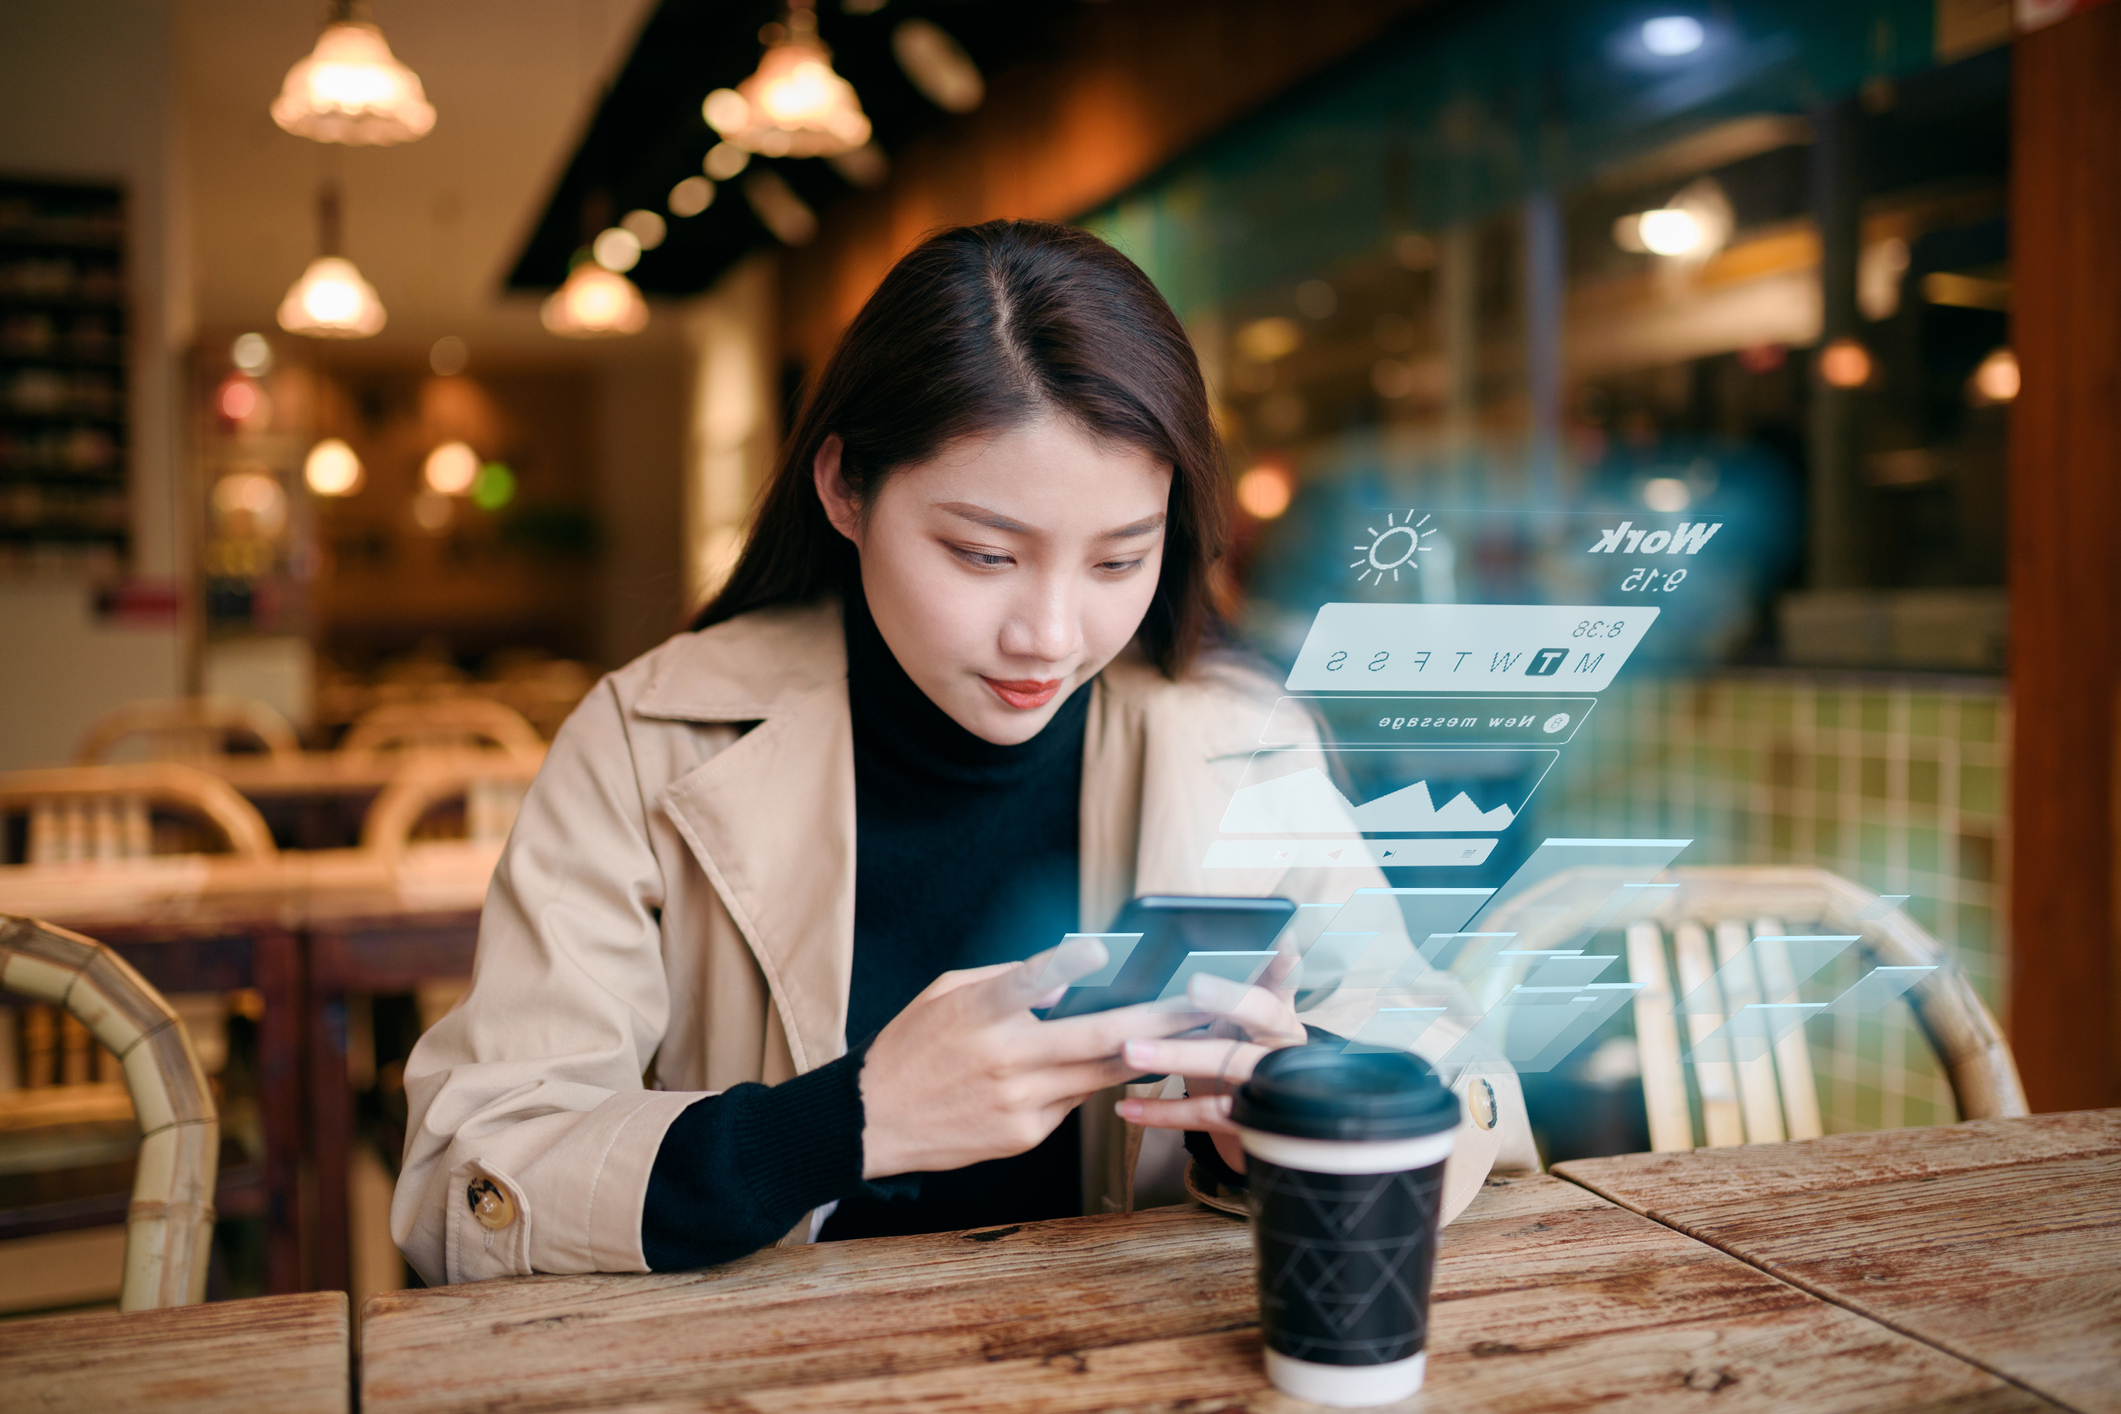 Woman uses mobile phone on virtual visual screen in cafe